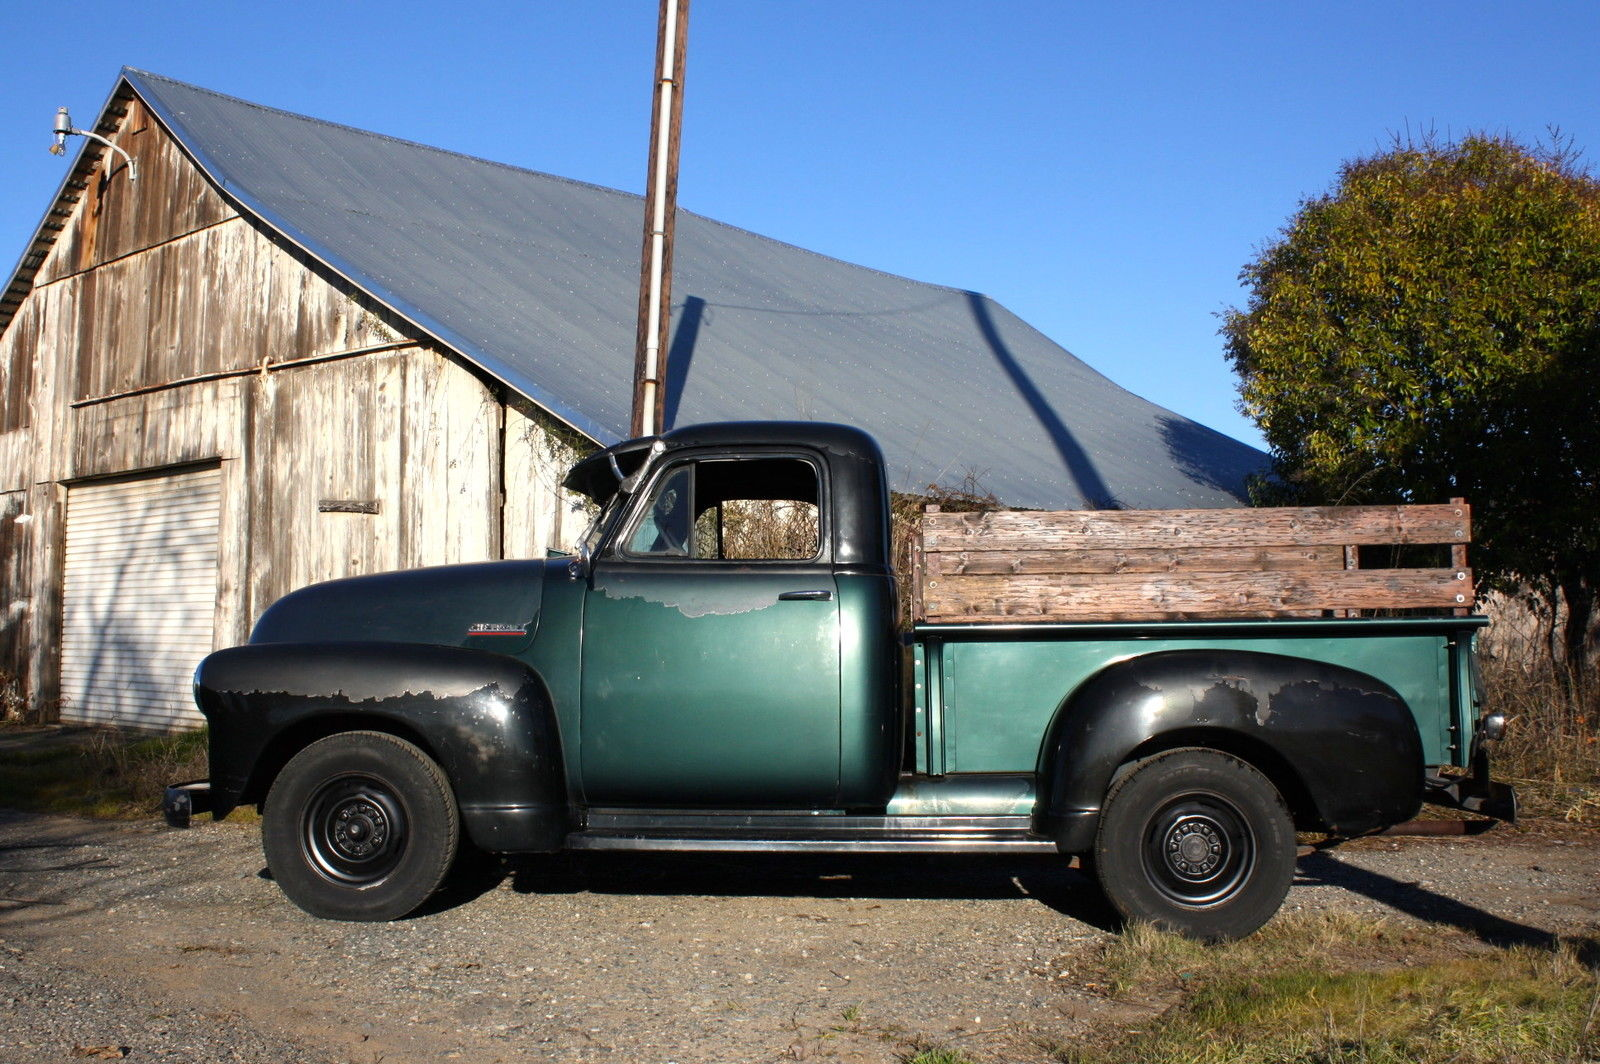 1951 Chevrolet Pickup California Truck Video 1949 1950 1952 Chevy Paint Colors 1953 1954